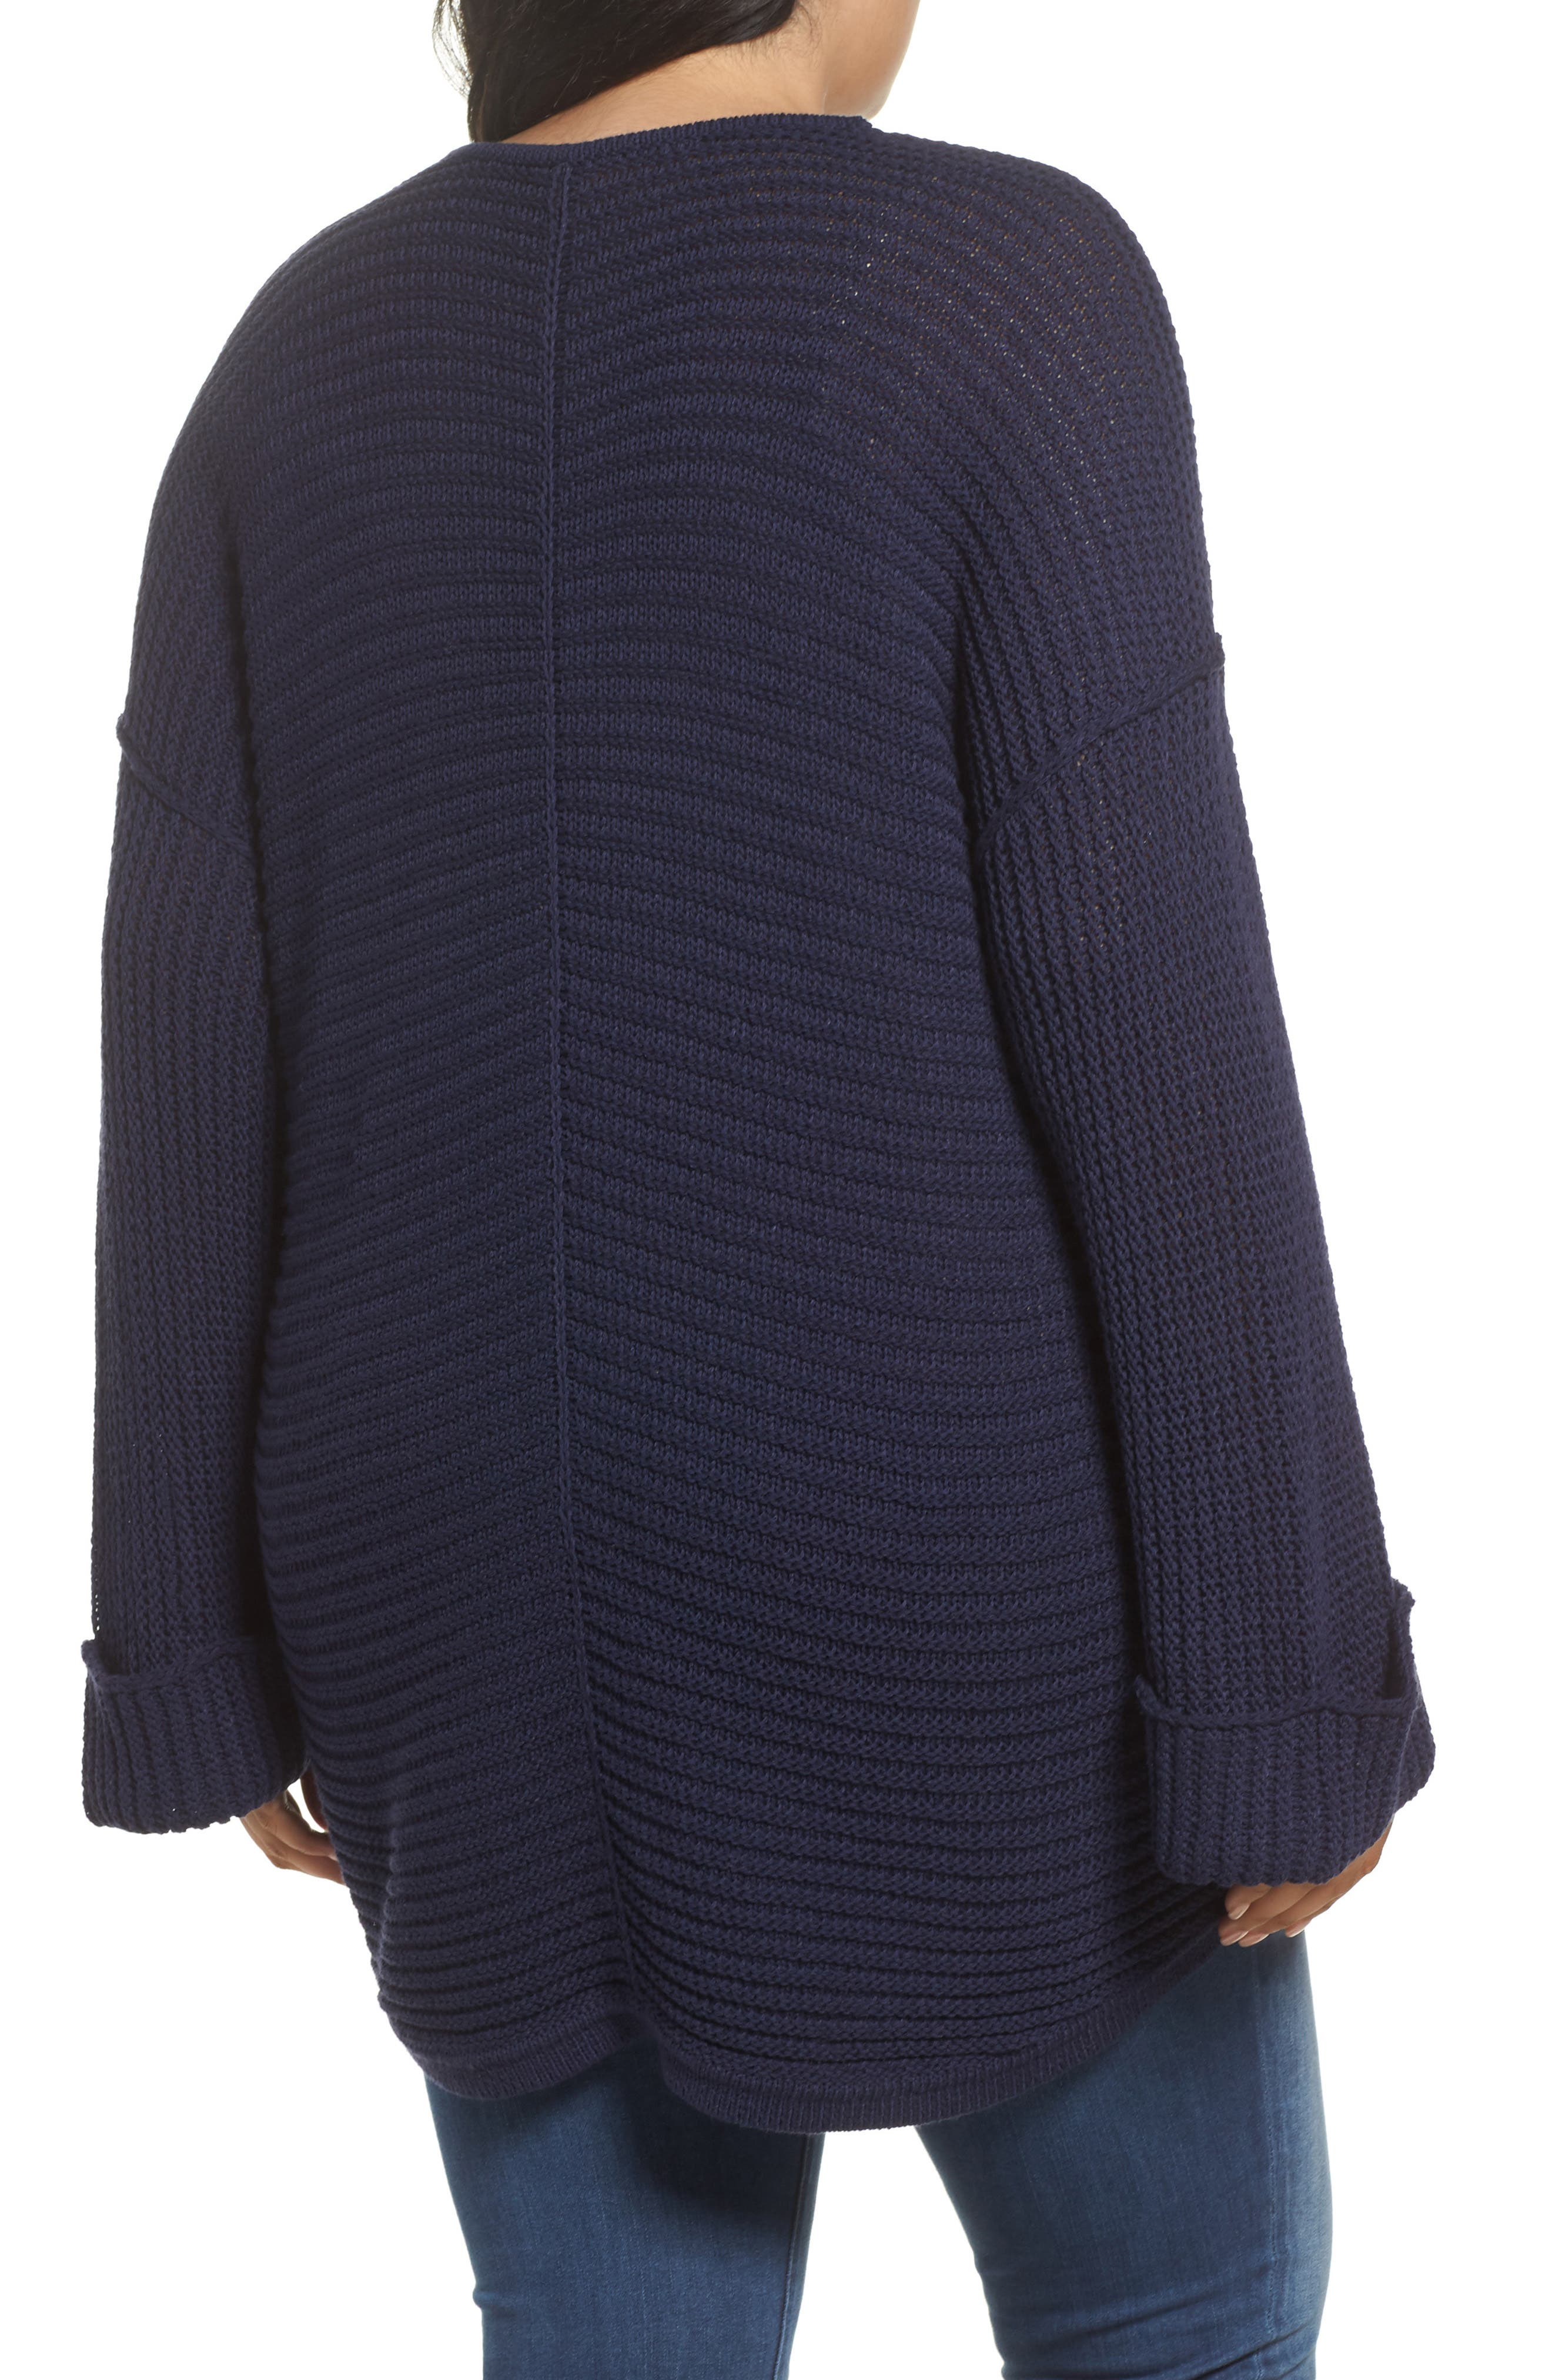 Cuffed Bell Sleeve Sweater,                             Alternate thumbnail 5, color,